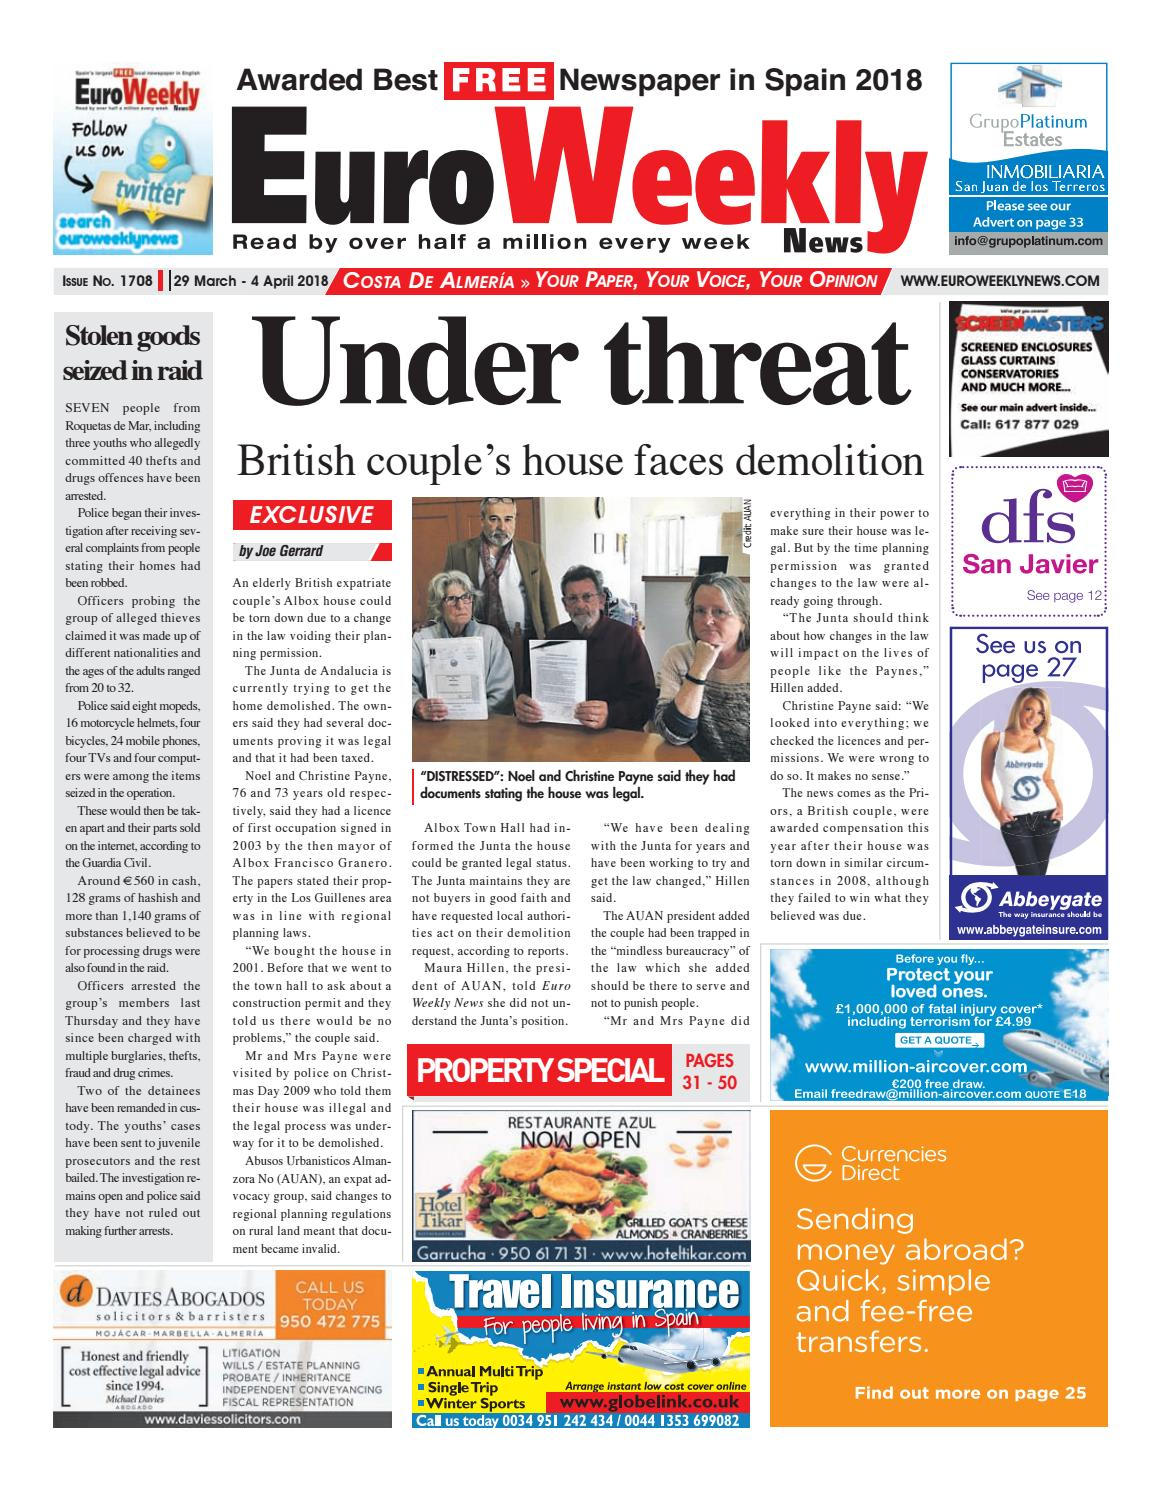 Euro Weekly News - Costa de Almeria 29 March - 4 April 2018 Issue 1708 by  Euro Weekly News Media S.A. - issuu